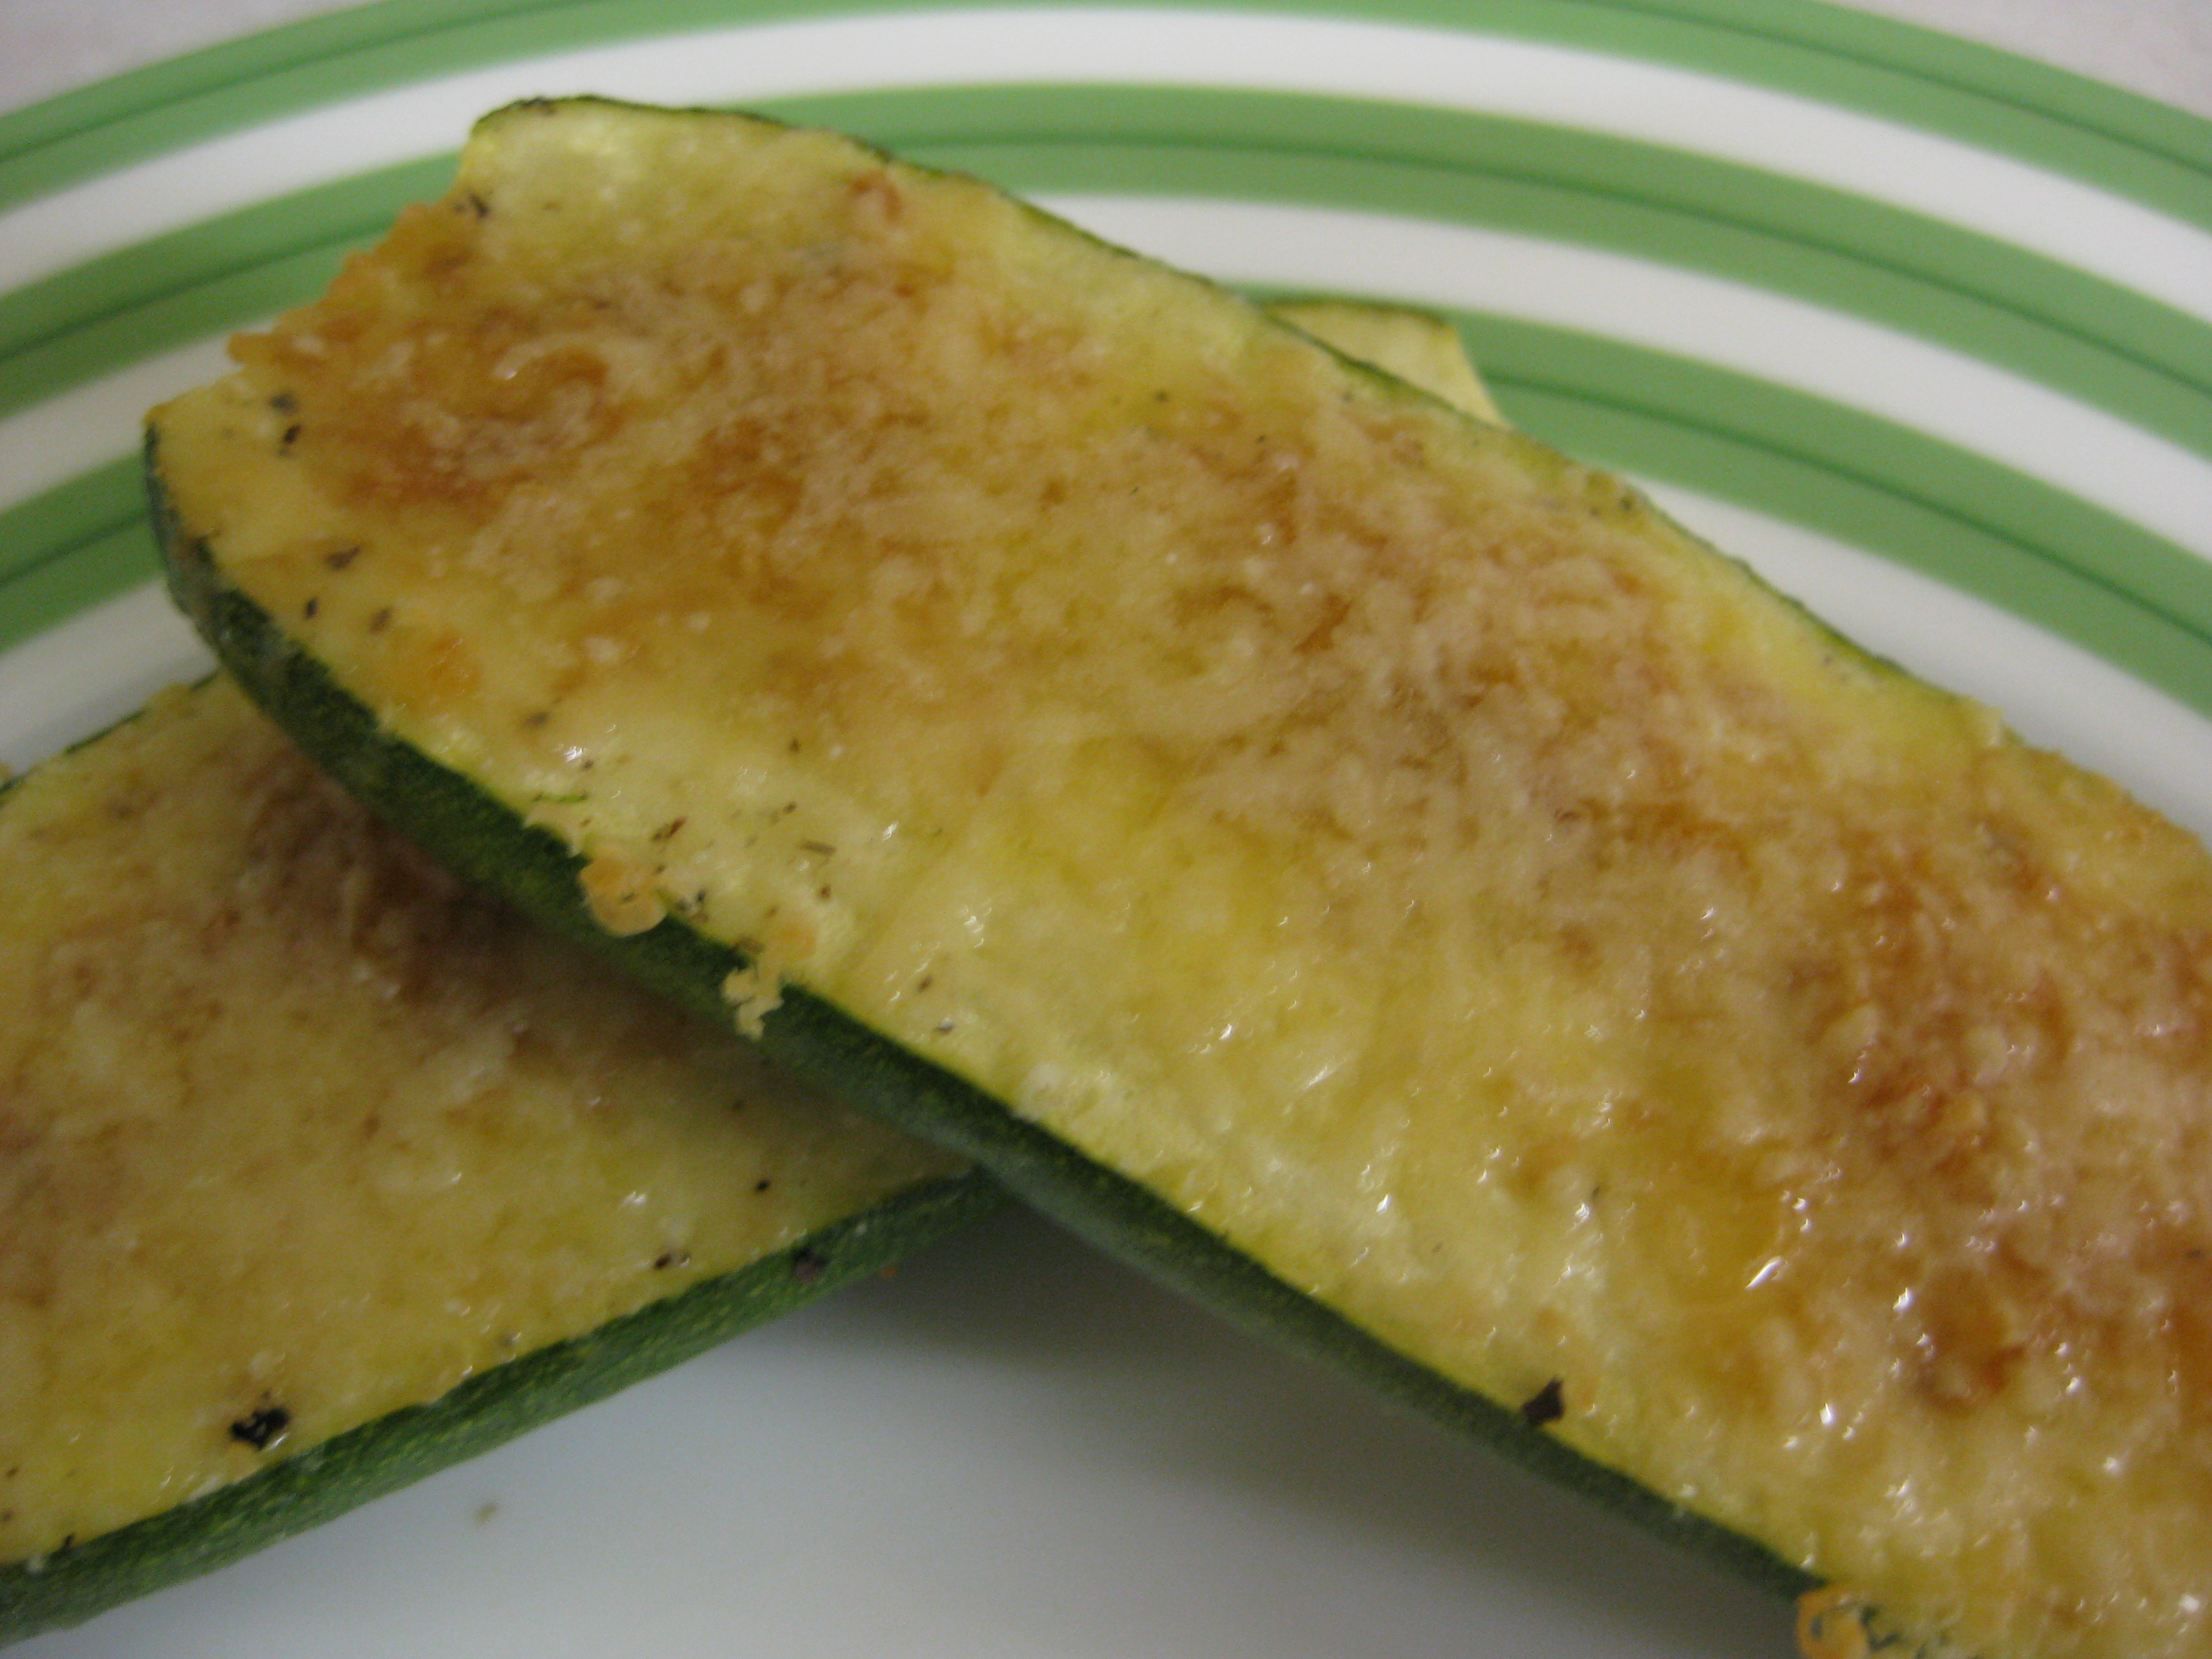 Courgettes Gratinees – Baked Zucchini with Parmesan | To ...